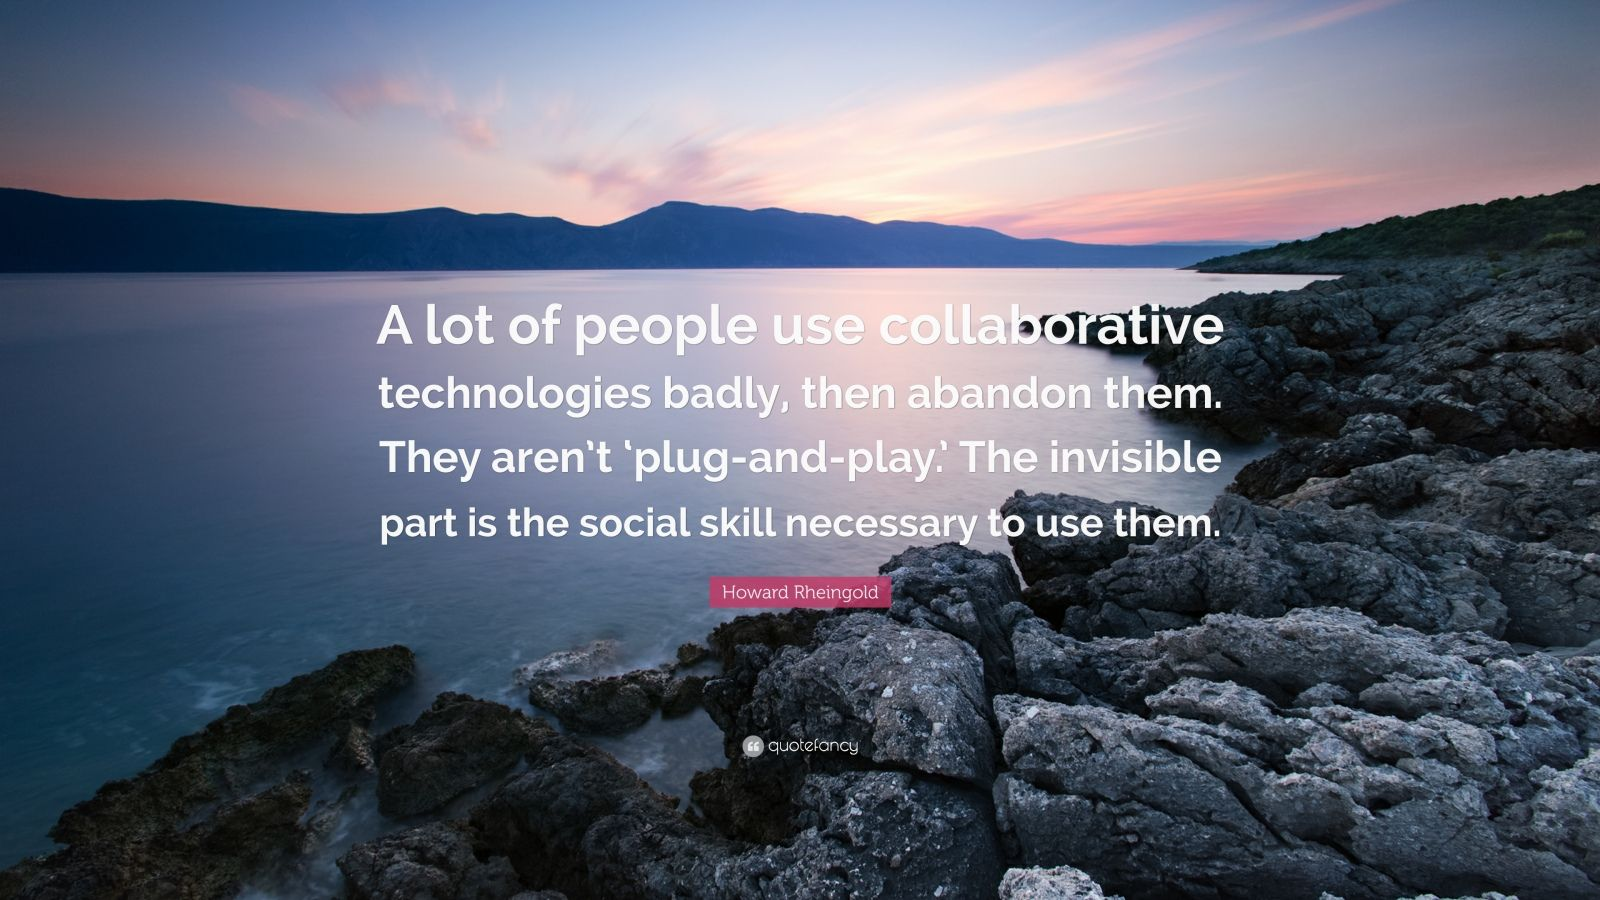 """Howard Rheingold Quote: """"A lot of people use collaborative technologies badly, then abandon them. They aren't 'plug-and-play.' The invisible part is the social skill necessary to use them."""""""